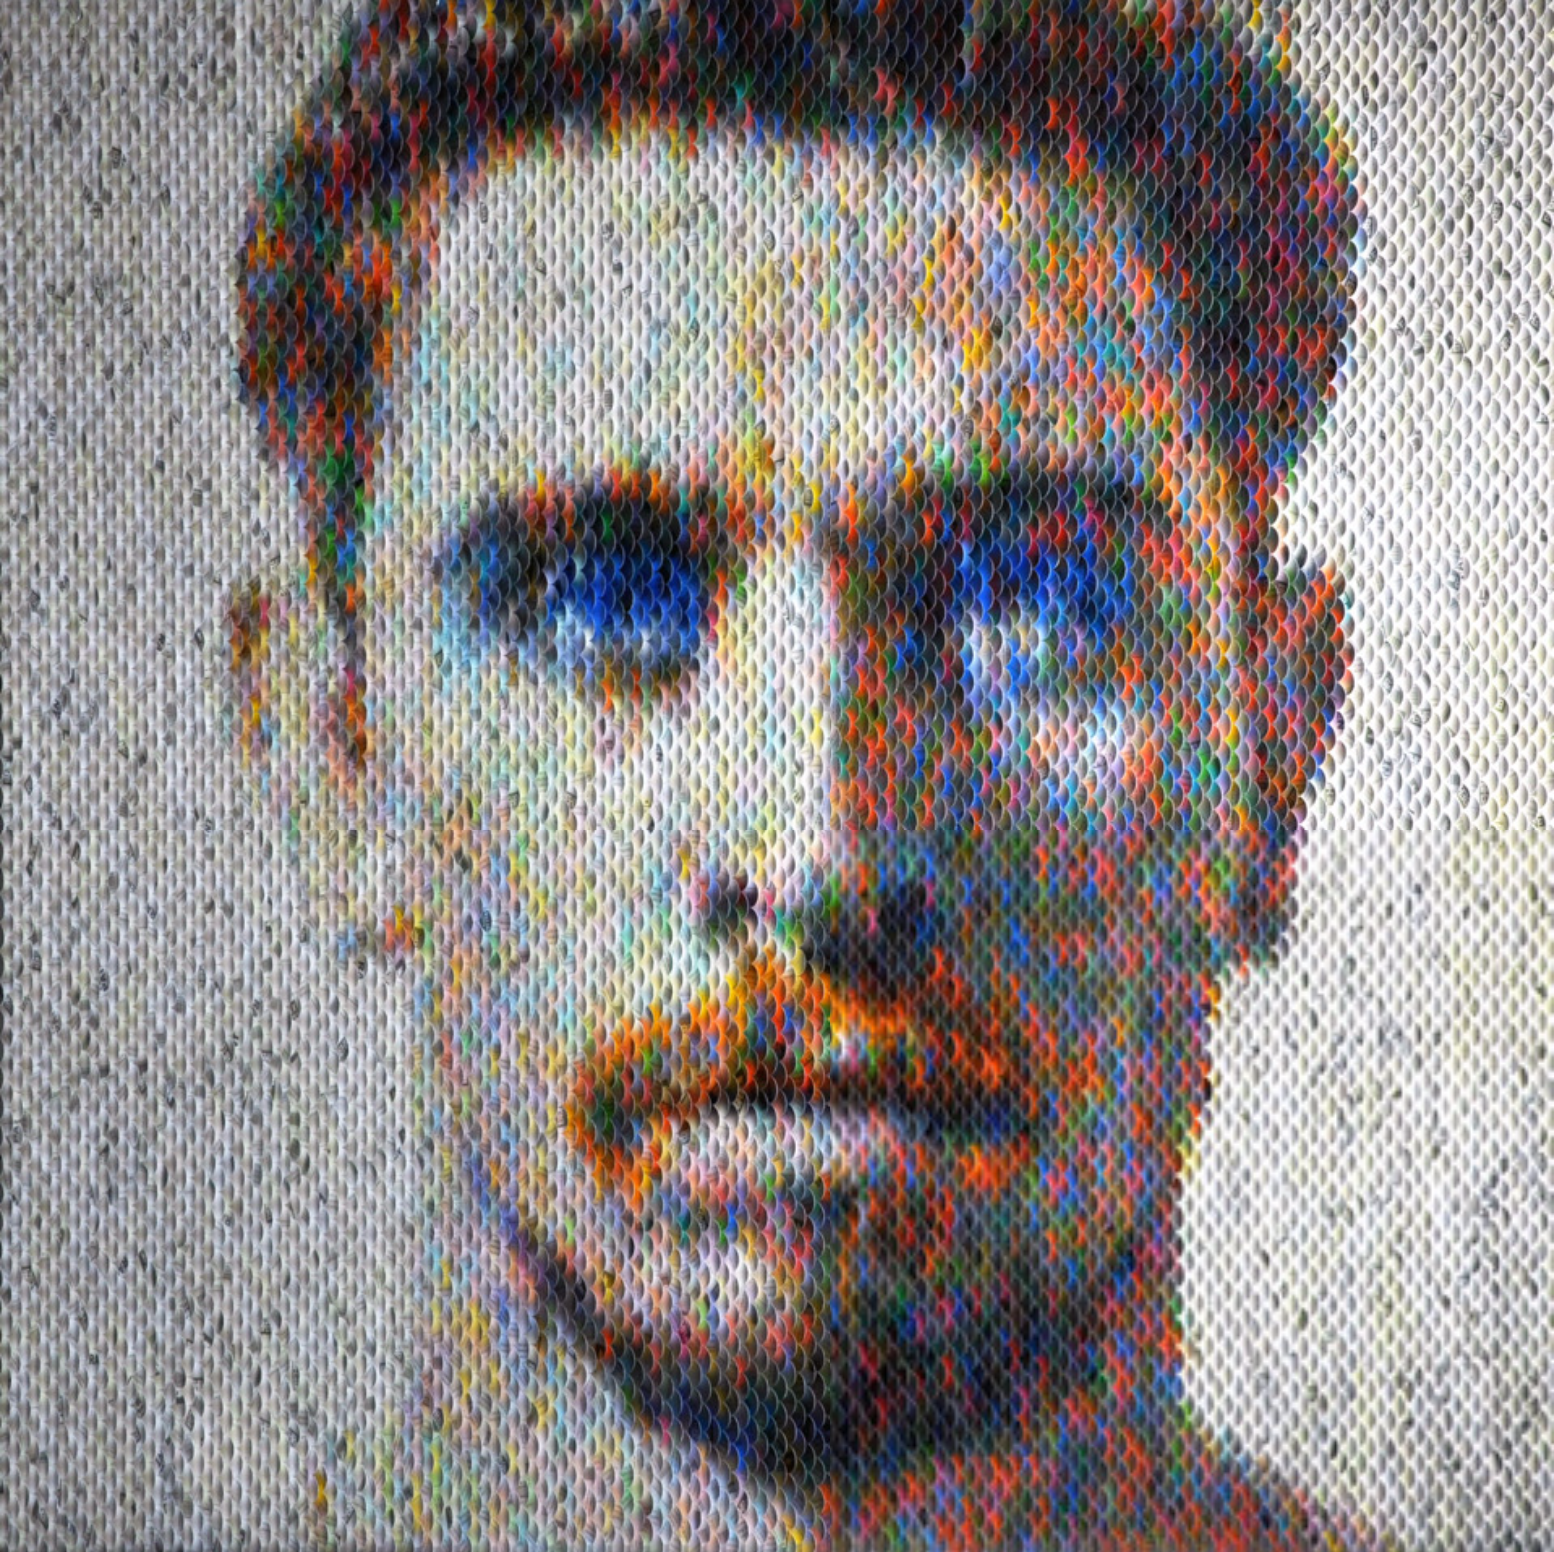 New Portraits Made From Hundreds of Punched Paint Chips - Blue Eyed Sam